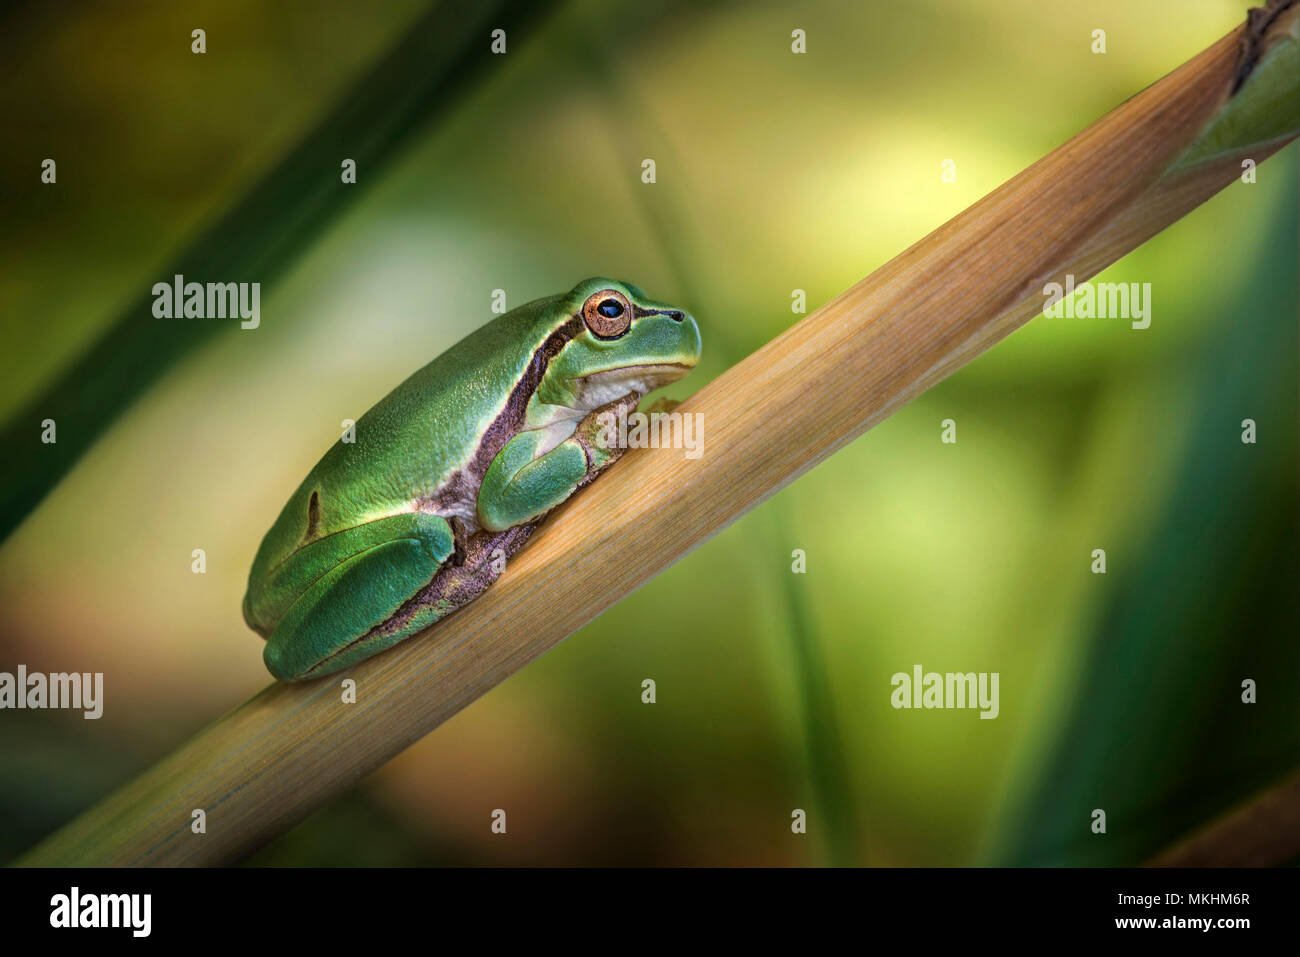 Italian Tree Frog (Hyla intermedia) resting, Luzzara, Reggio Emilia, Italy Stock Photo